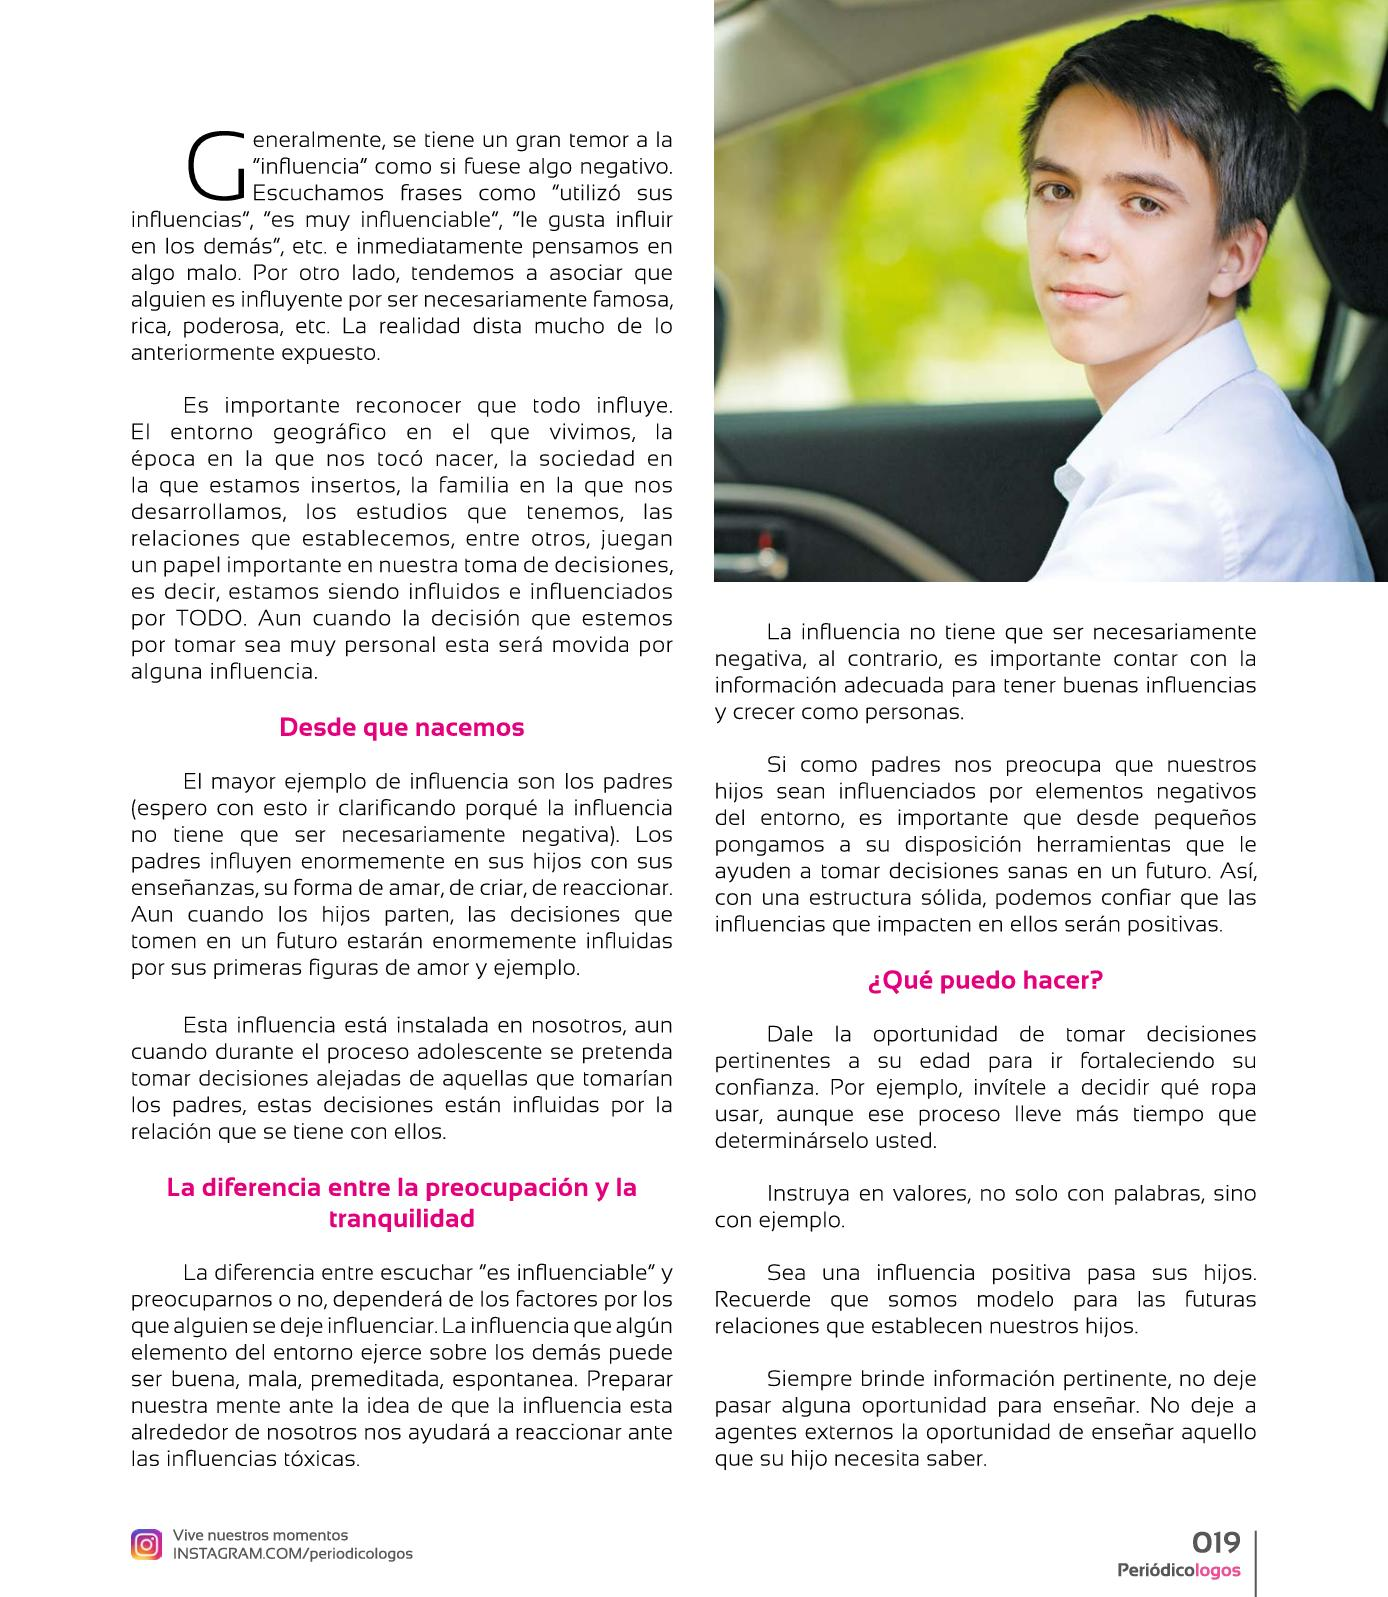 Page 19